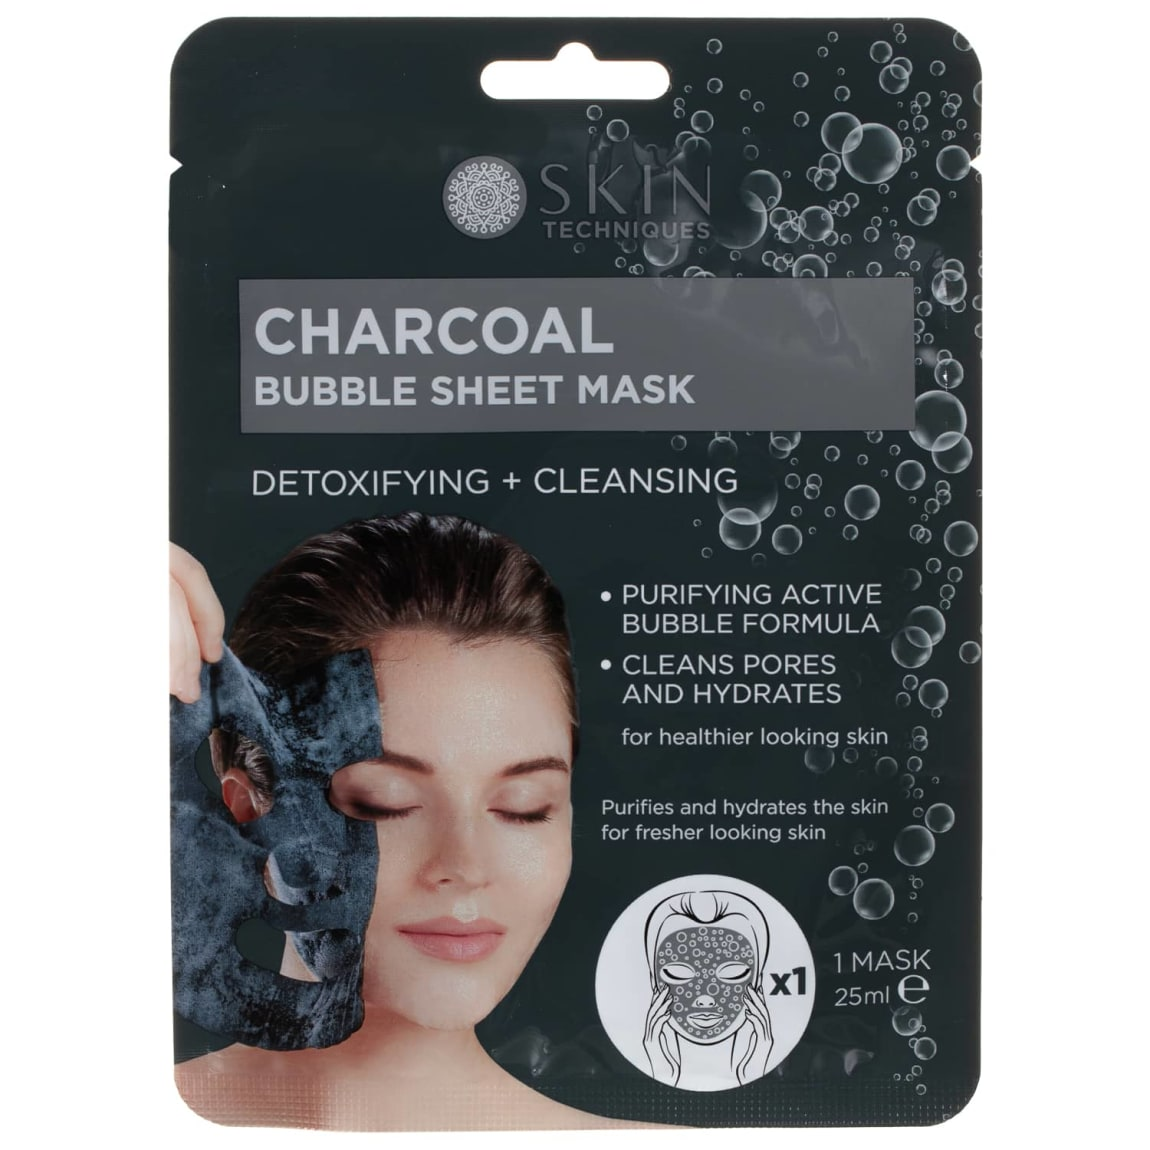 Skin Techniques Charcoal Bubble Sheet Mask